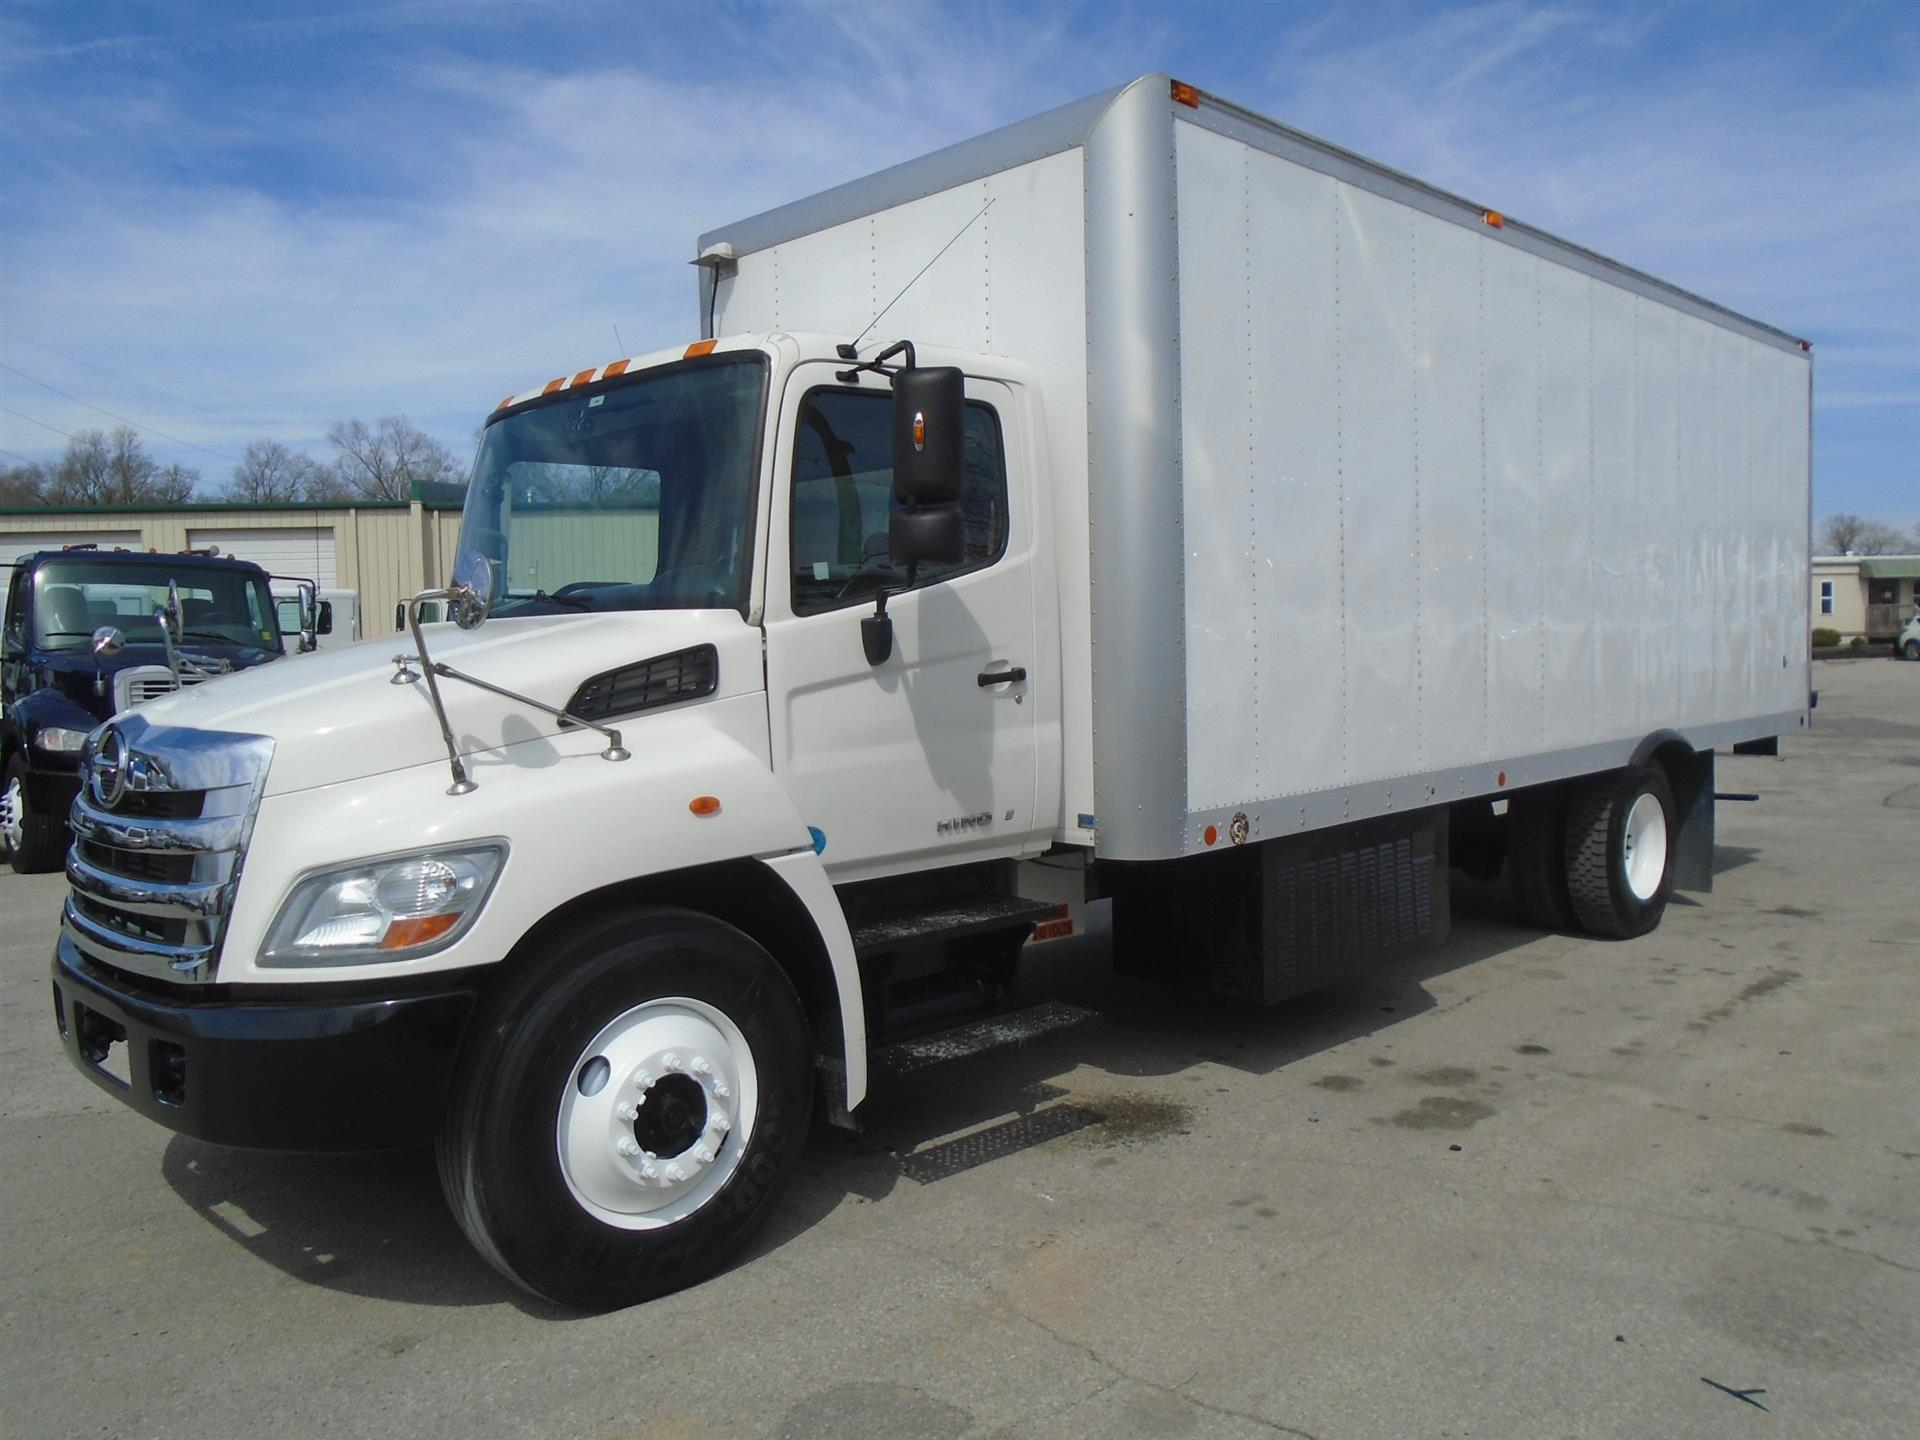 2013 Hino Truck, Hercules Refrigerated Body #429114 - photo 1